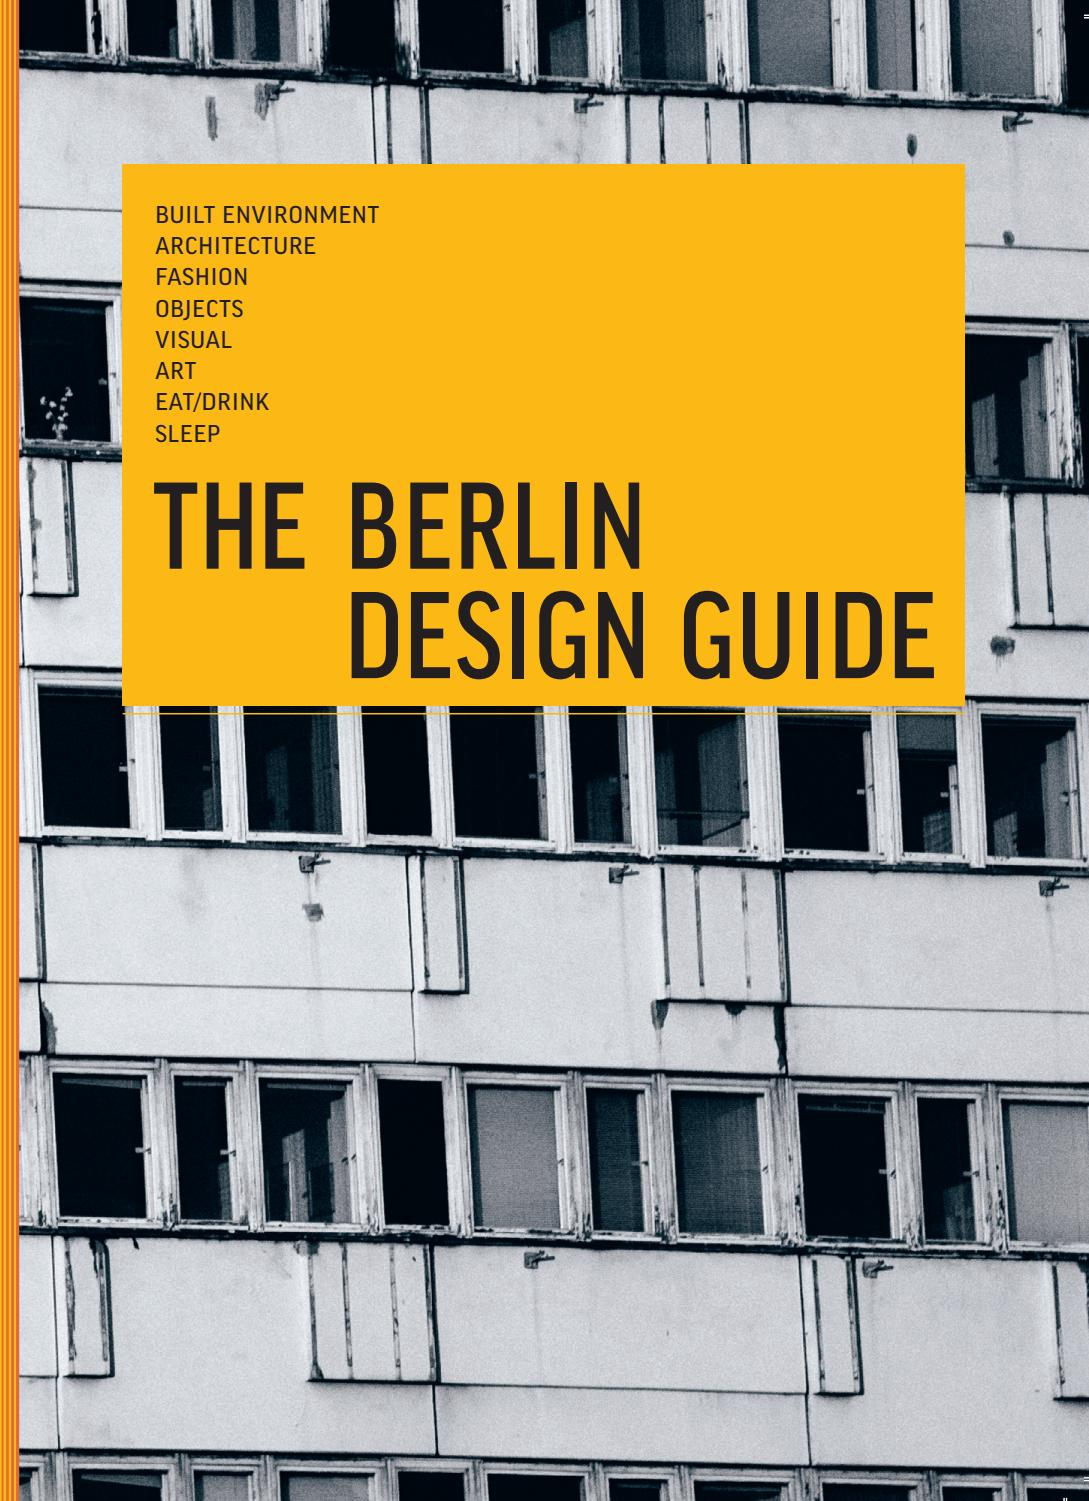 Vintage Möbel Neukölln The Berlin Design Guide By The Design Guides Issuu